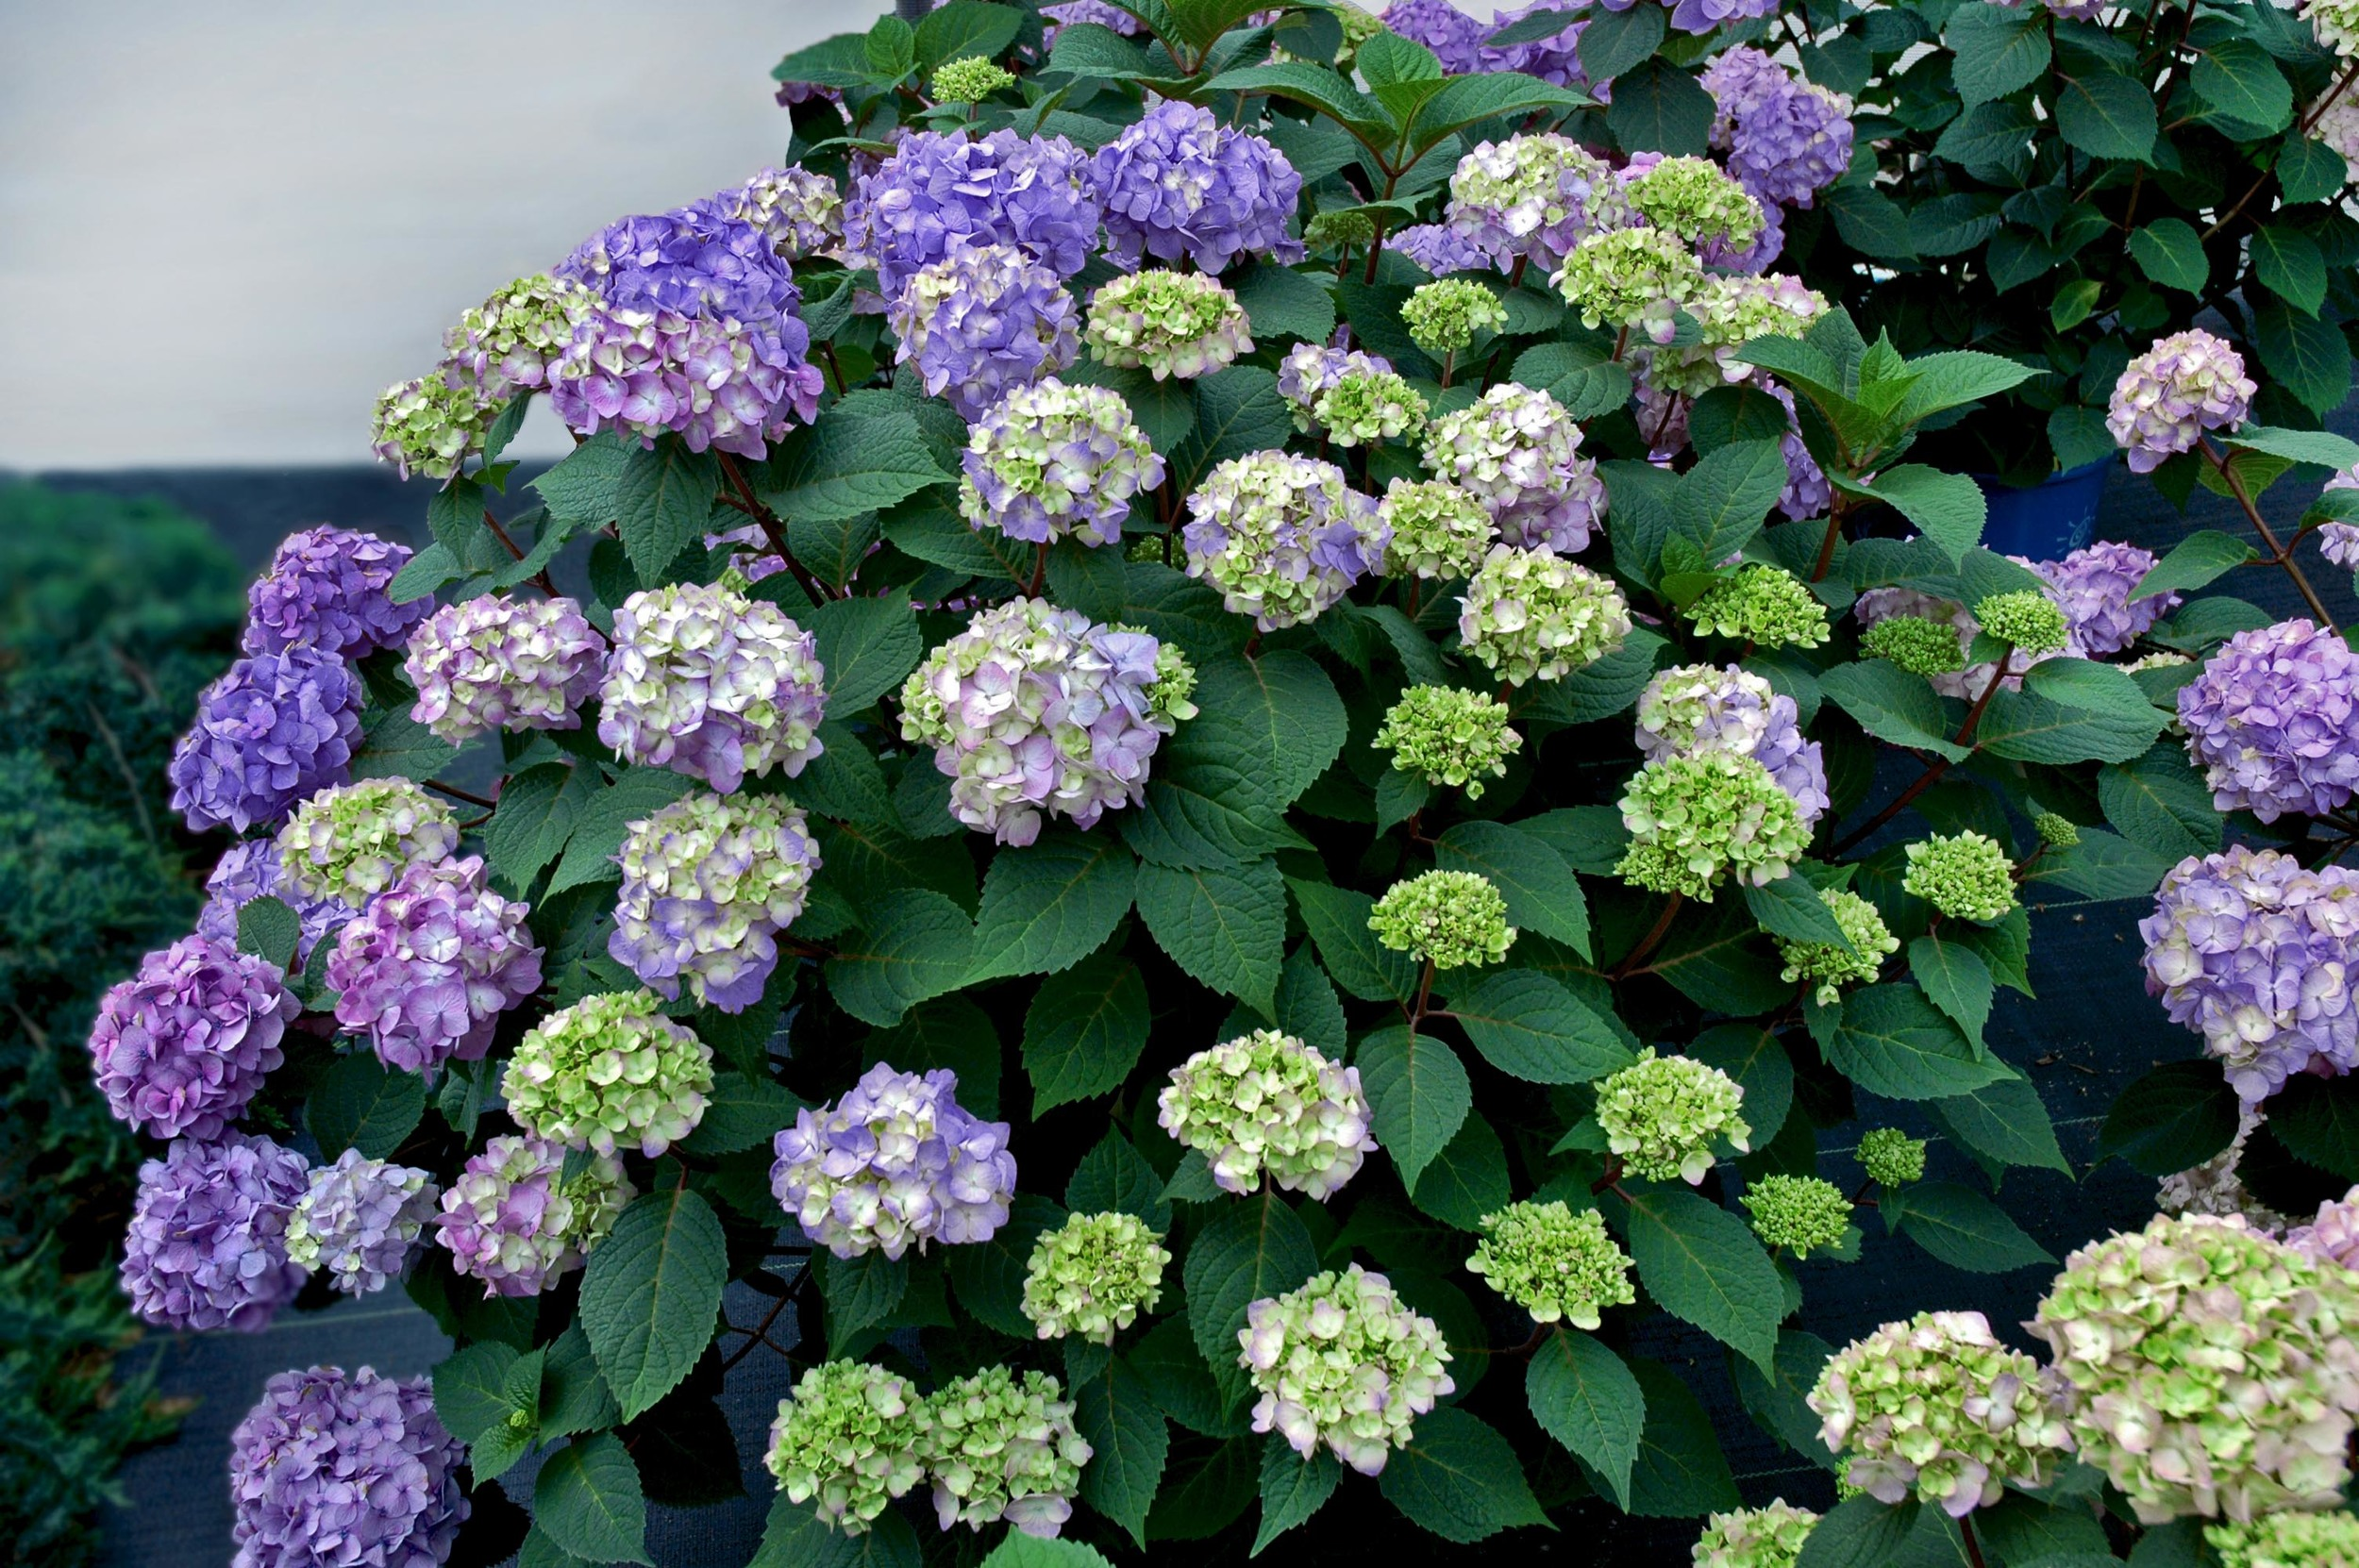 Hydrangea-macrophylla-P11HM-11-Endless-Summer-Bloomstruck-photo-Baileys-Nurseries.jpg